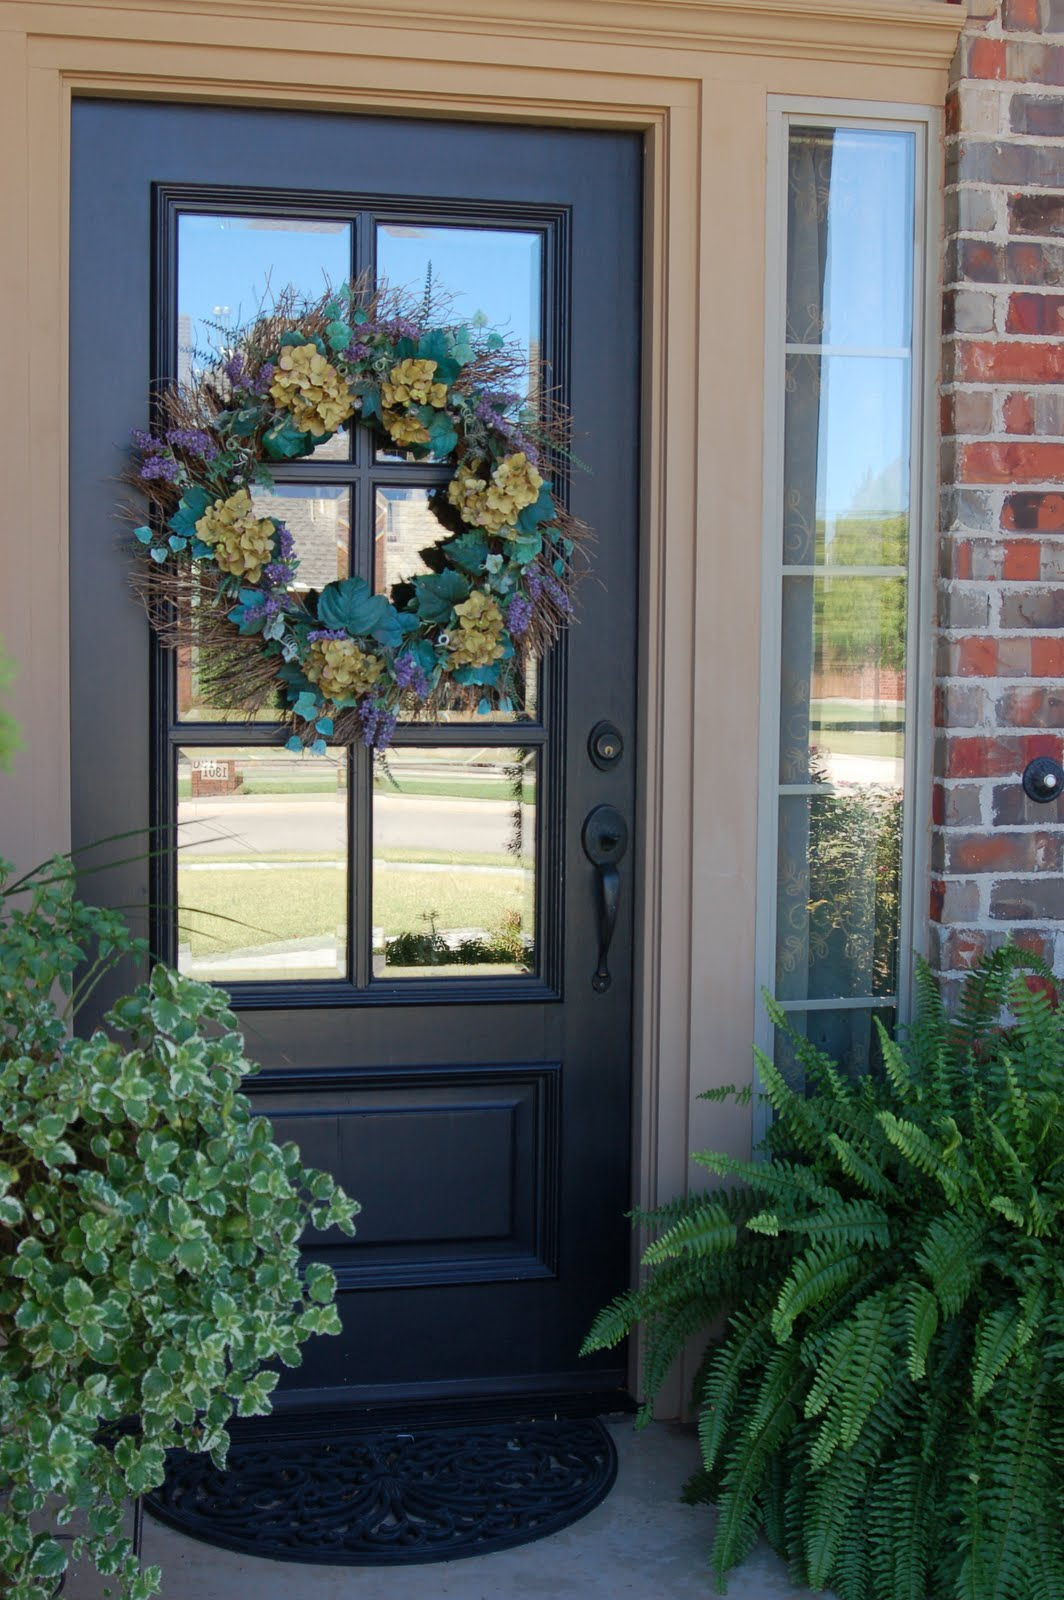 Grey dog designs front door facelift for Front door ideas photos